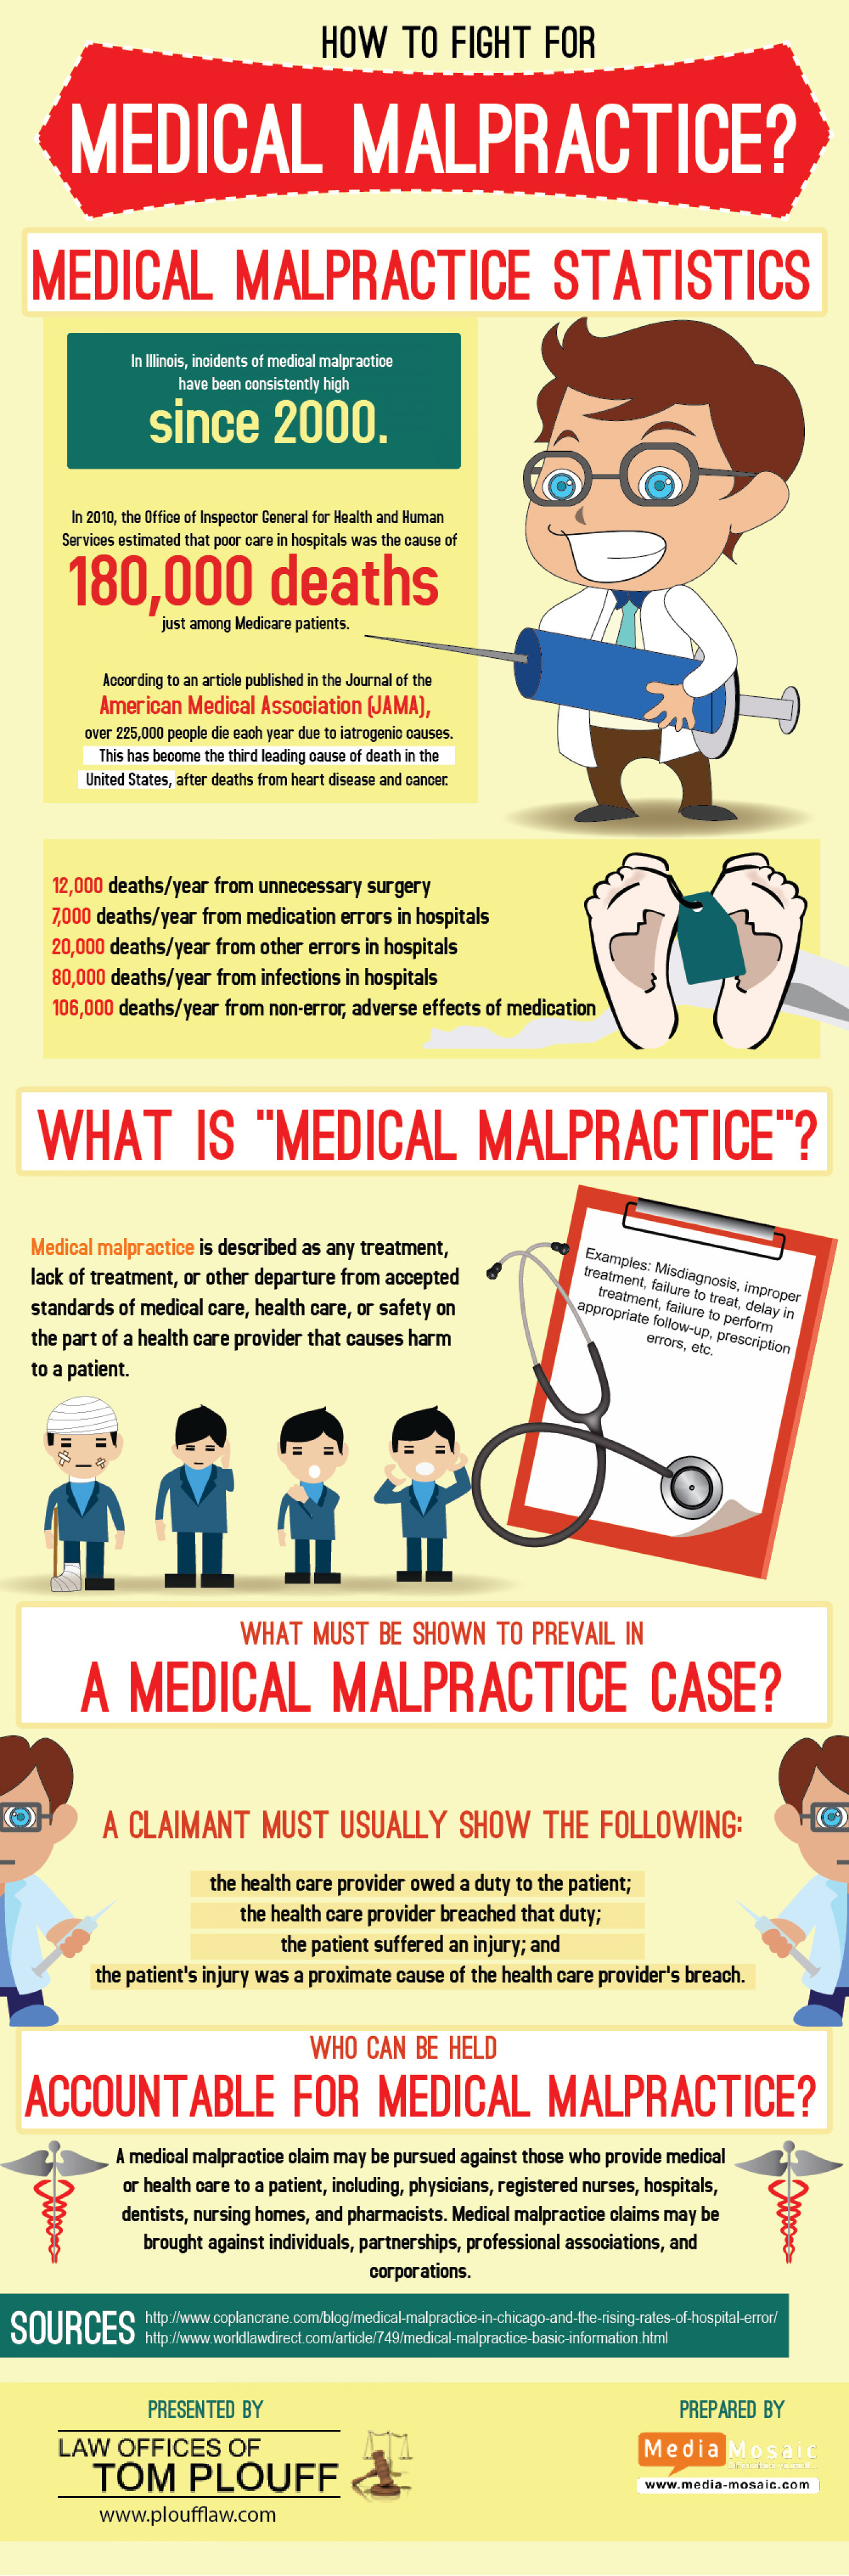 How To Fight For Medical Malpractice? Infographic